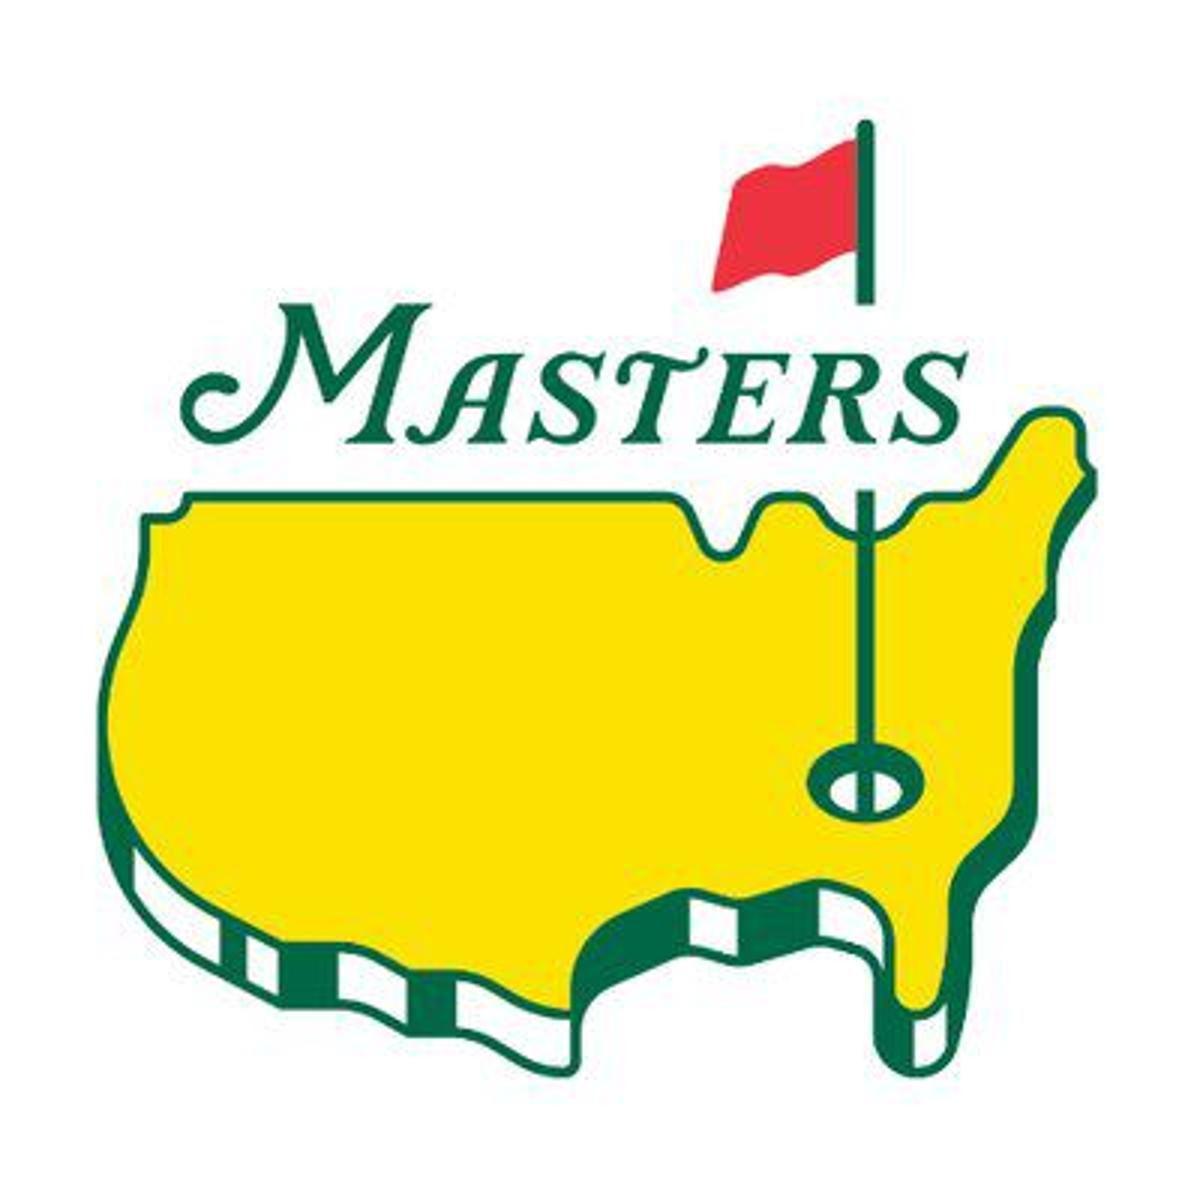 The Masters golf tournament has been postponed   College   scnow.com